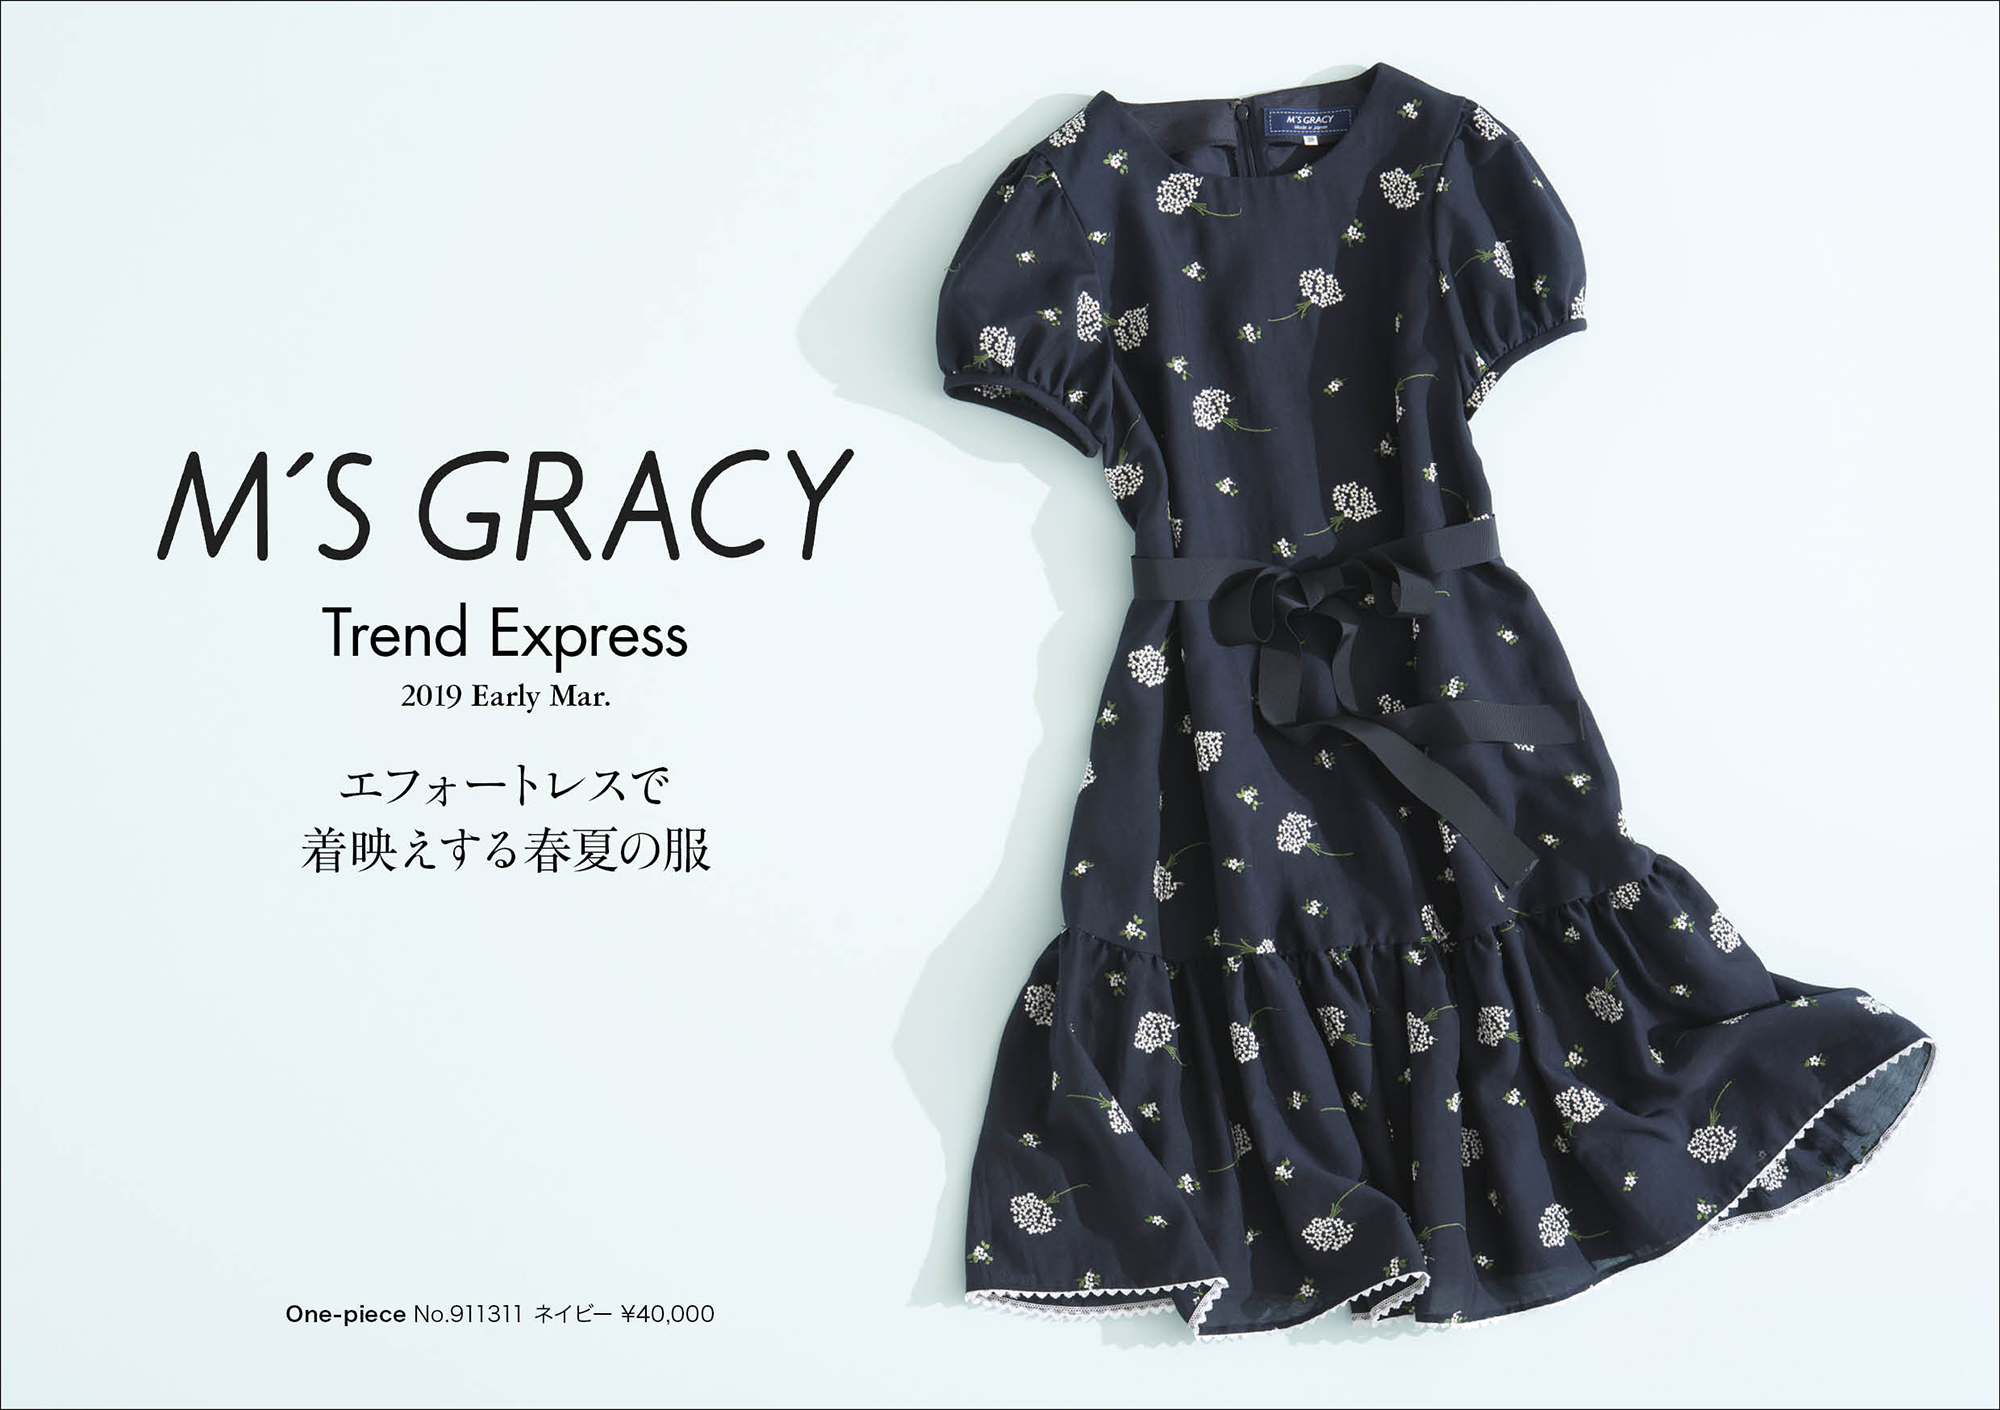 msgracy_2019early_mar01